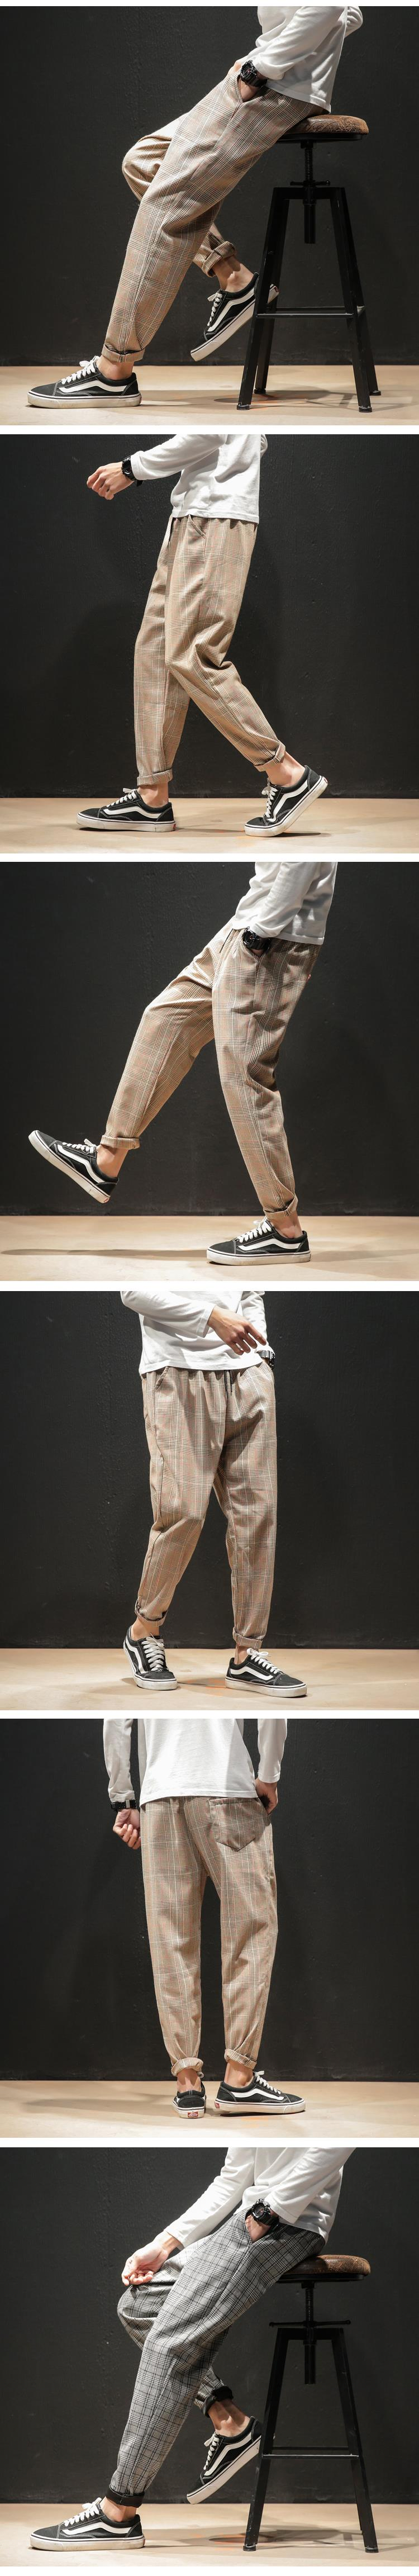 H34bd191f26874400a91de4d78a0b8e58V Dropshipping Japanese Streerwear Men Plaid Pants 2019 Autumn Fashion Slim Man Casual Trousers Korean Male Harem Pants